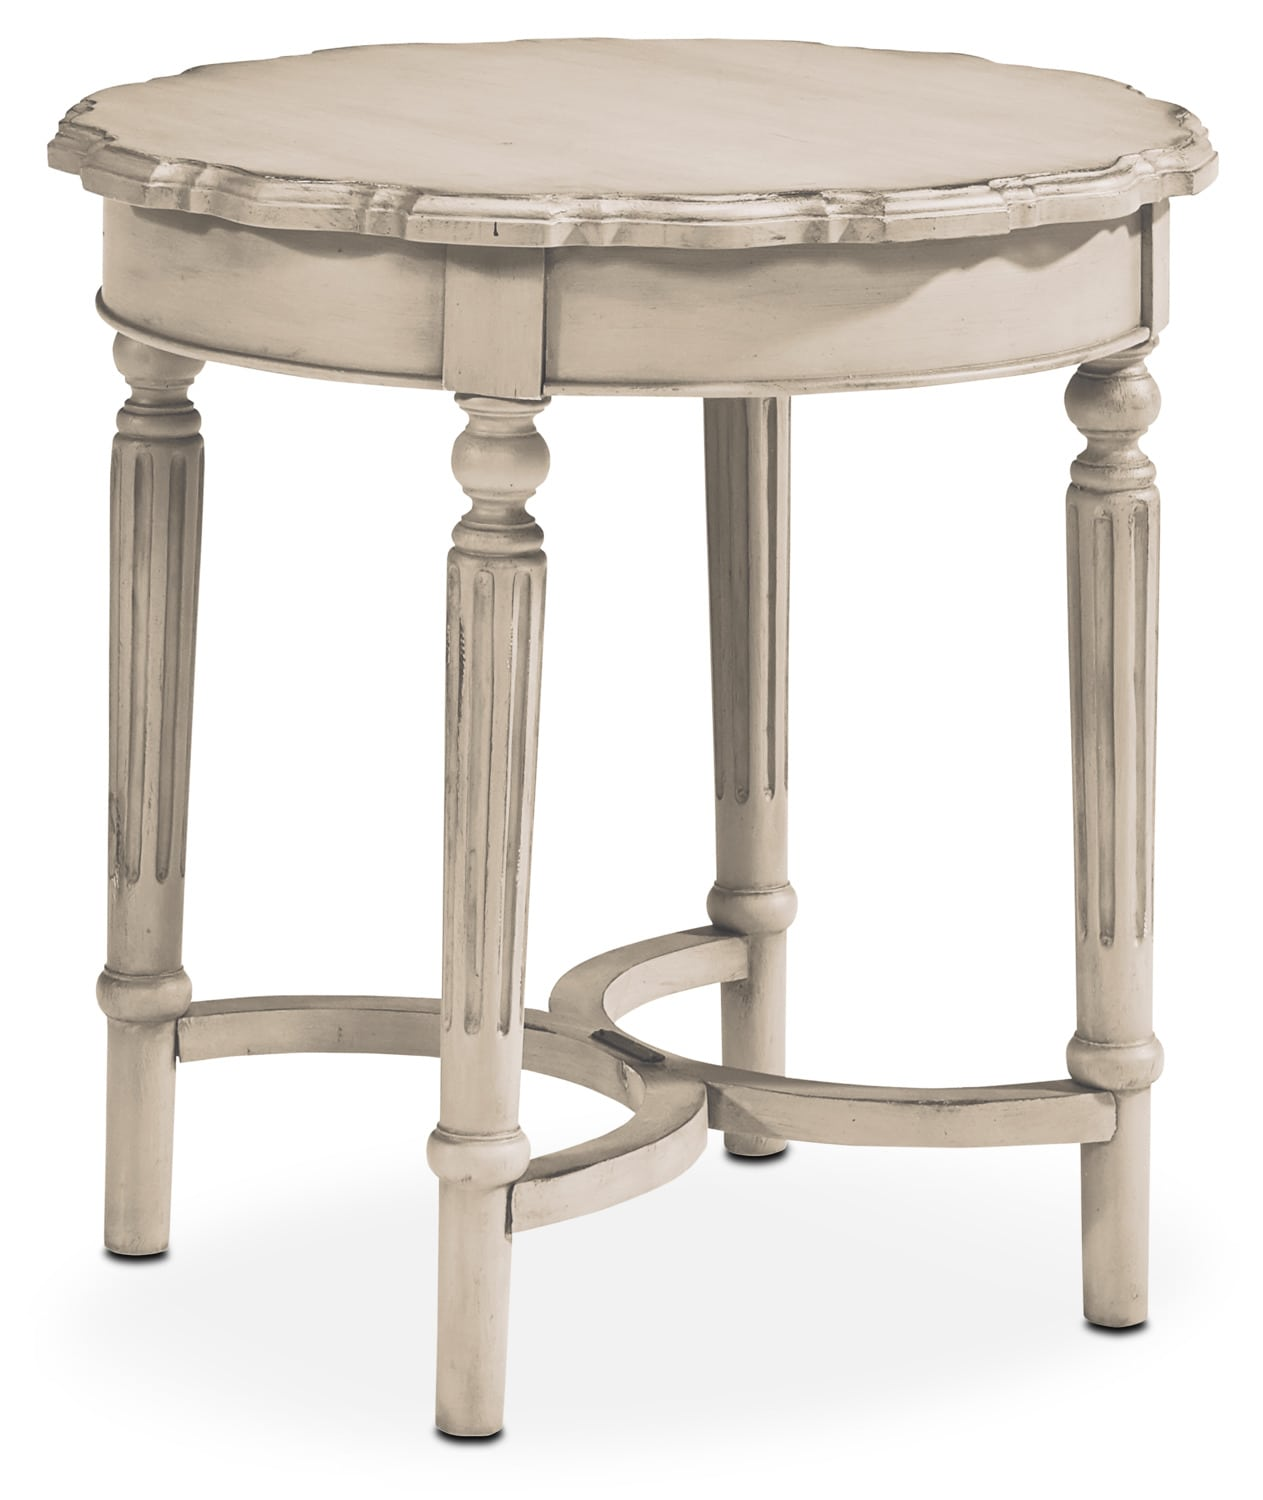 Accent and Occasional Furniture - French Pie Crust Short Table - Antique White